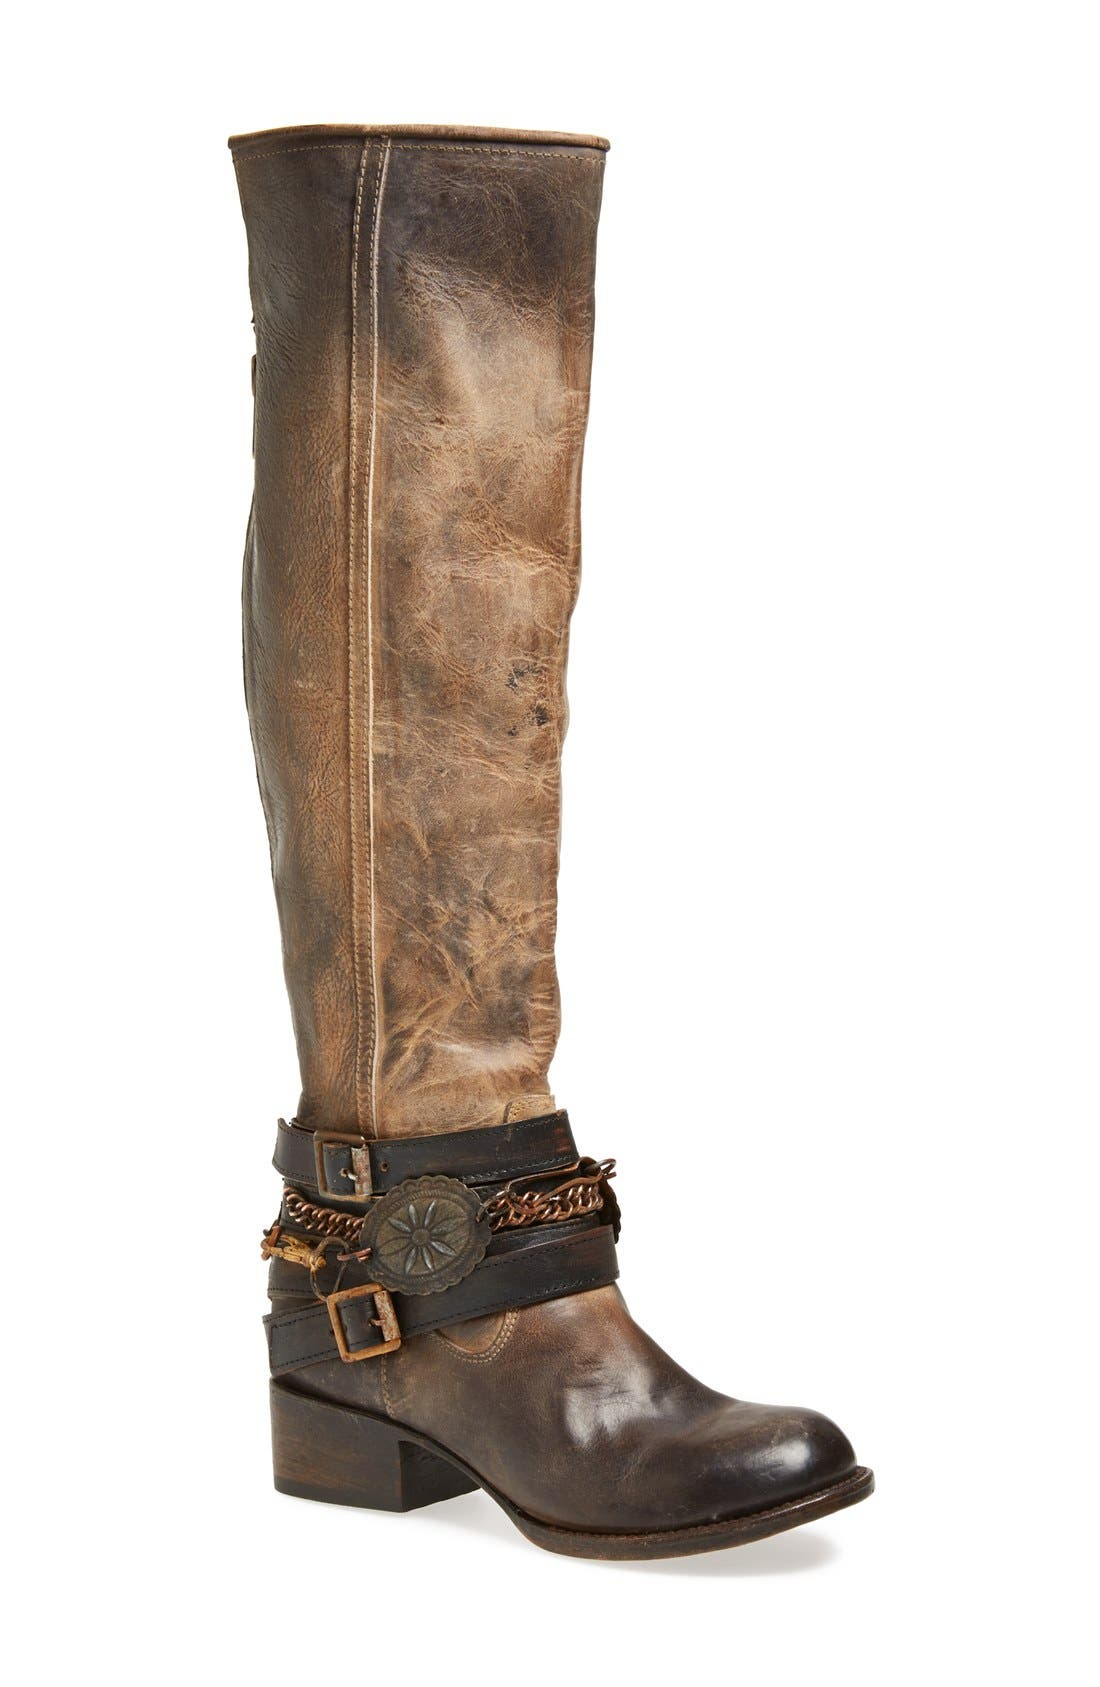 Alternate Image 1 Selected - Freebird by Steven Western Leather Boot (Women)